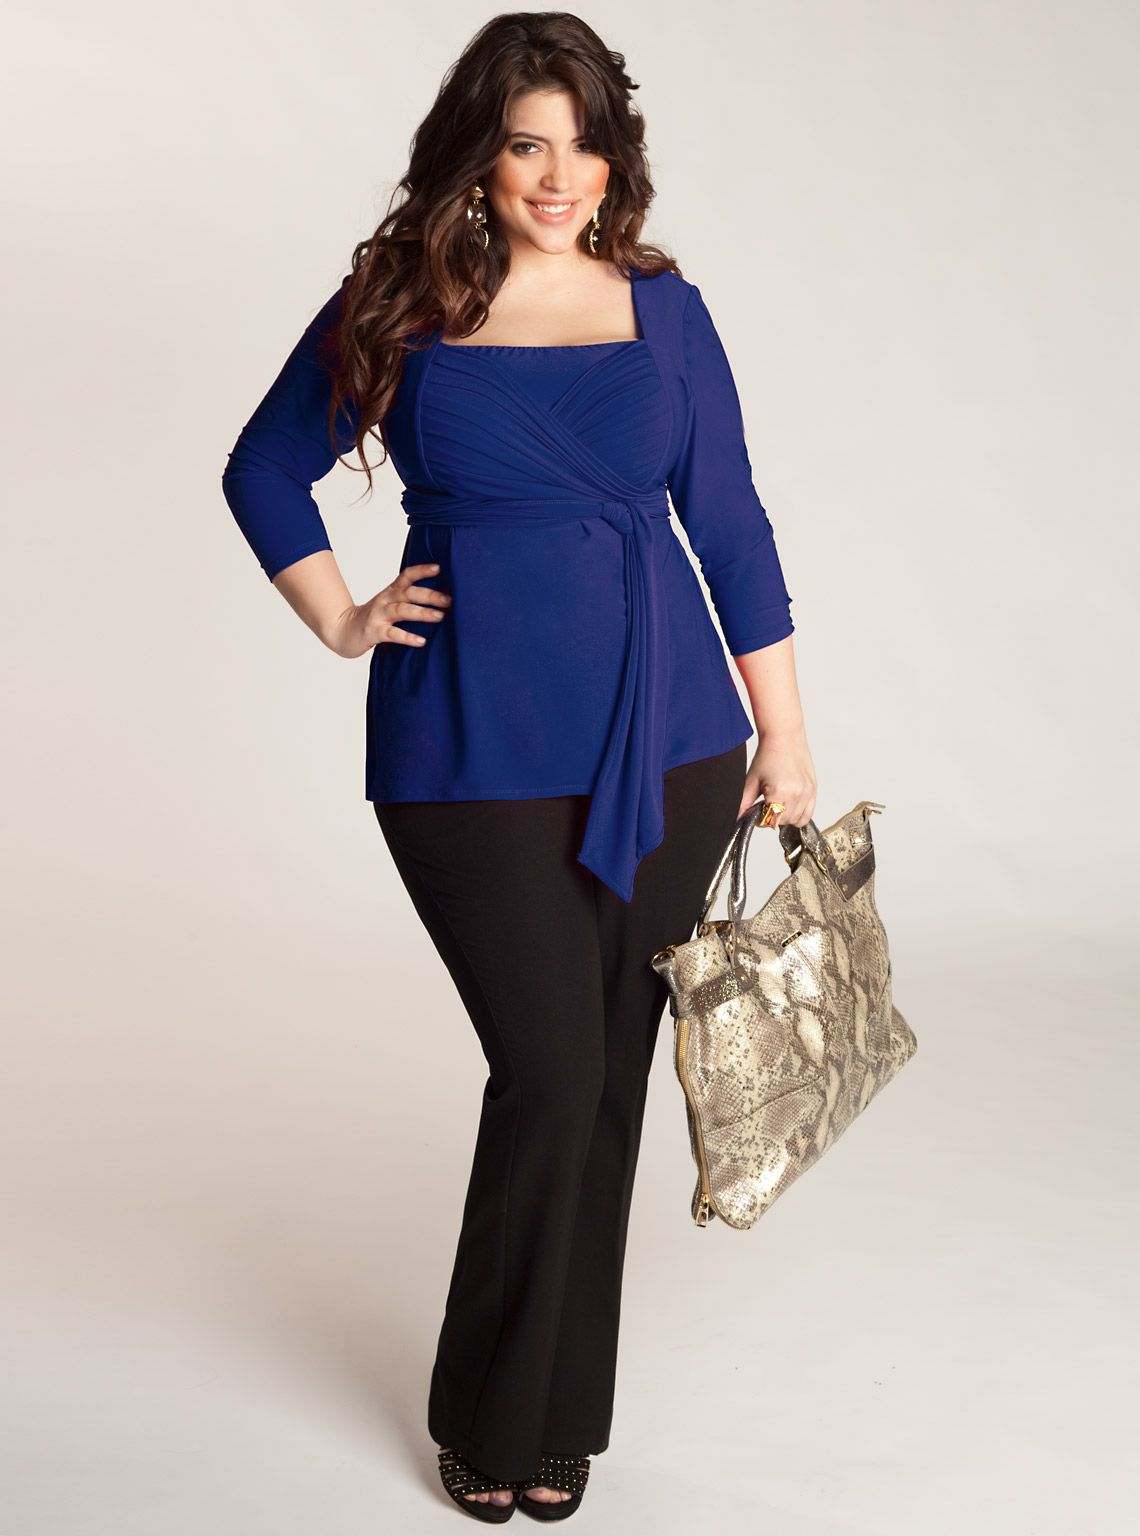 Plus Size Clothing.Com